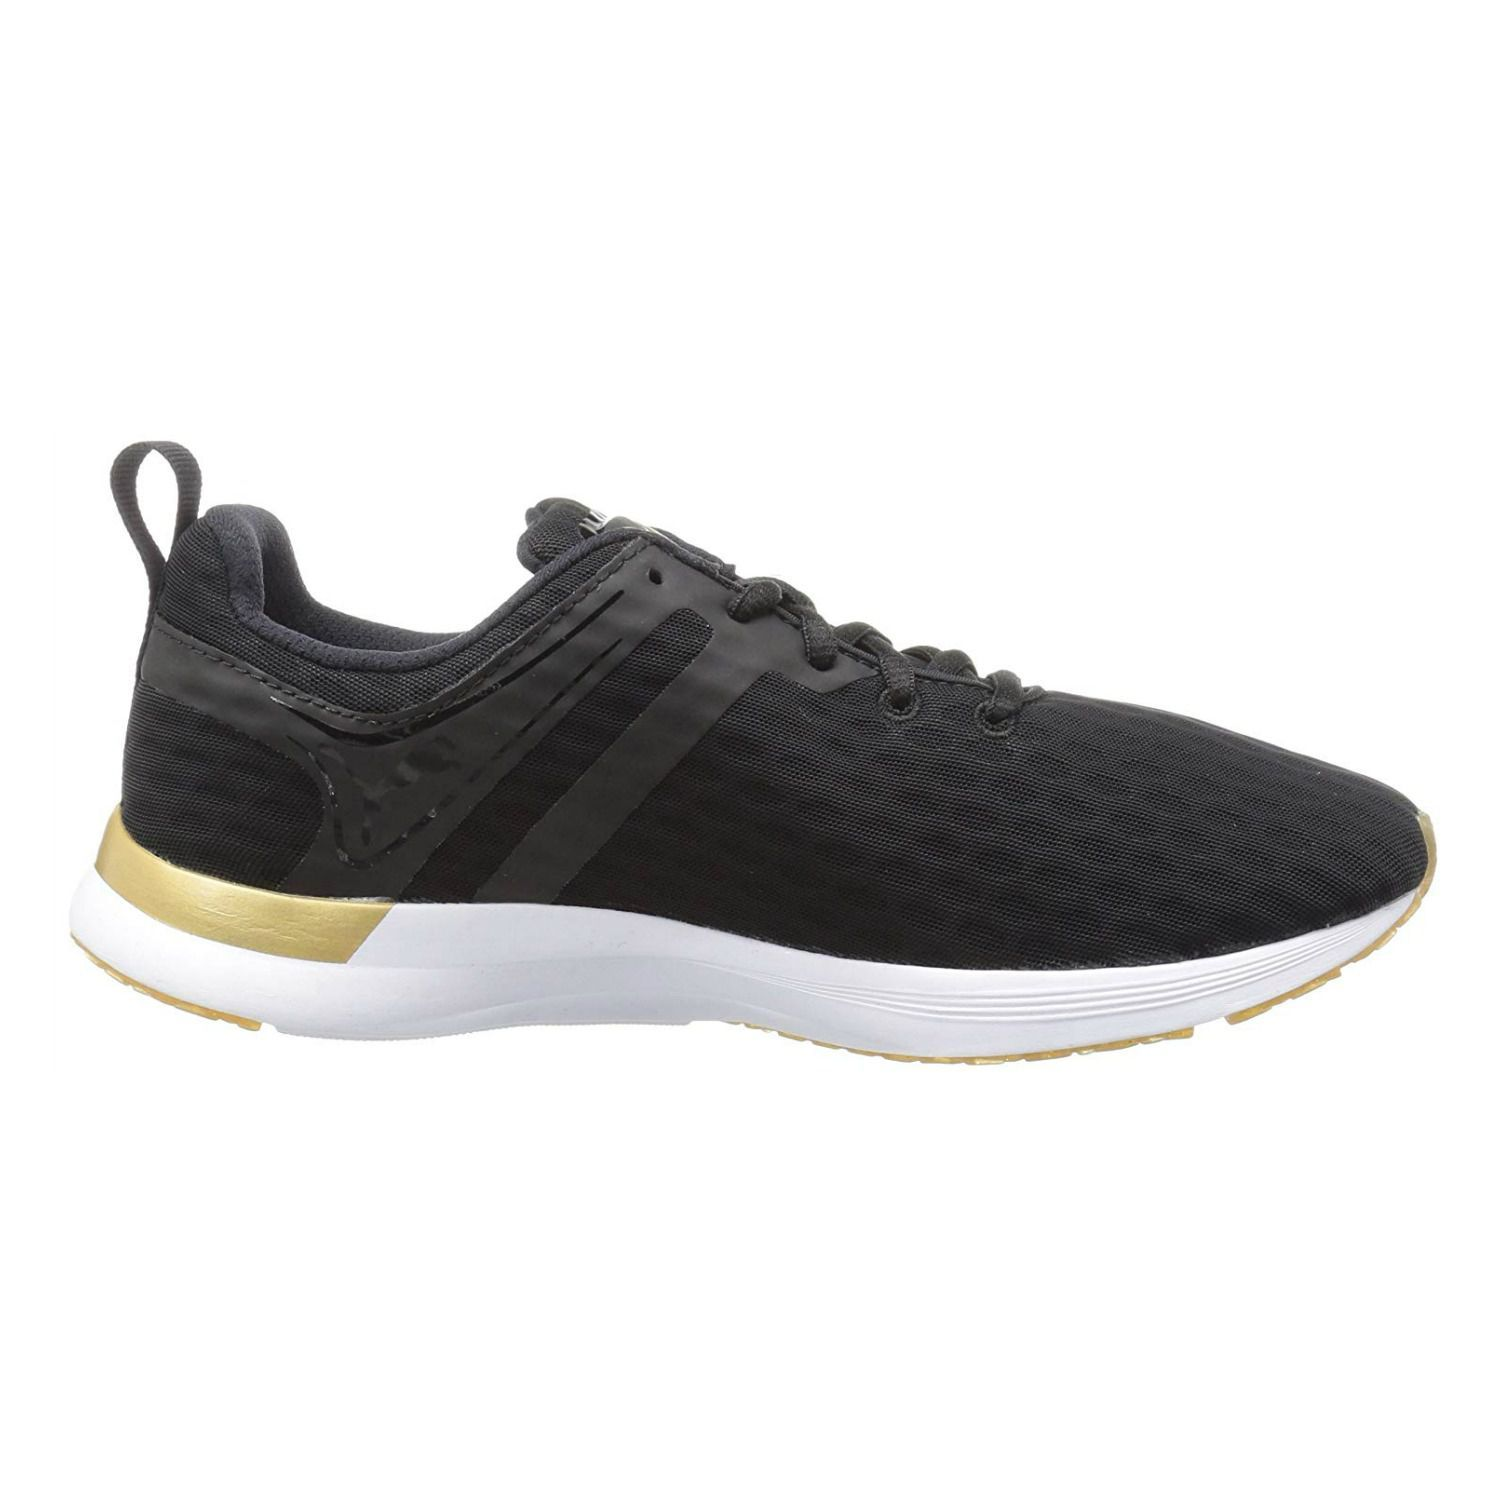 4585d23416f277 8 Best Cross Training Shoes for Women in 2018 - Best Gym Shoes